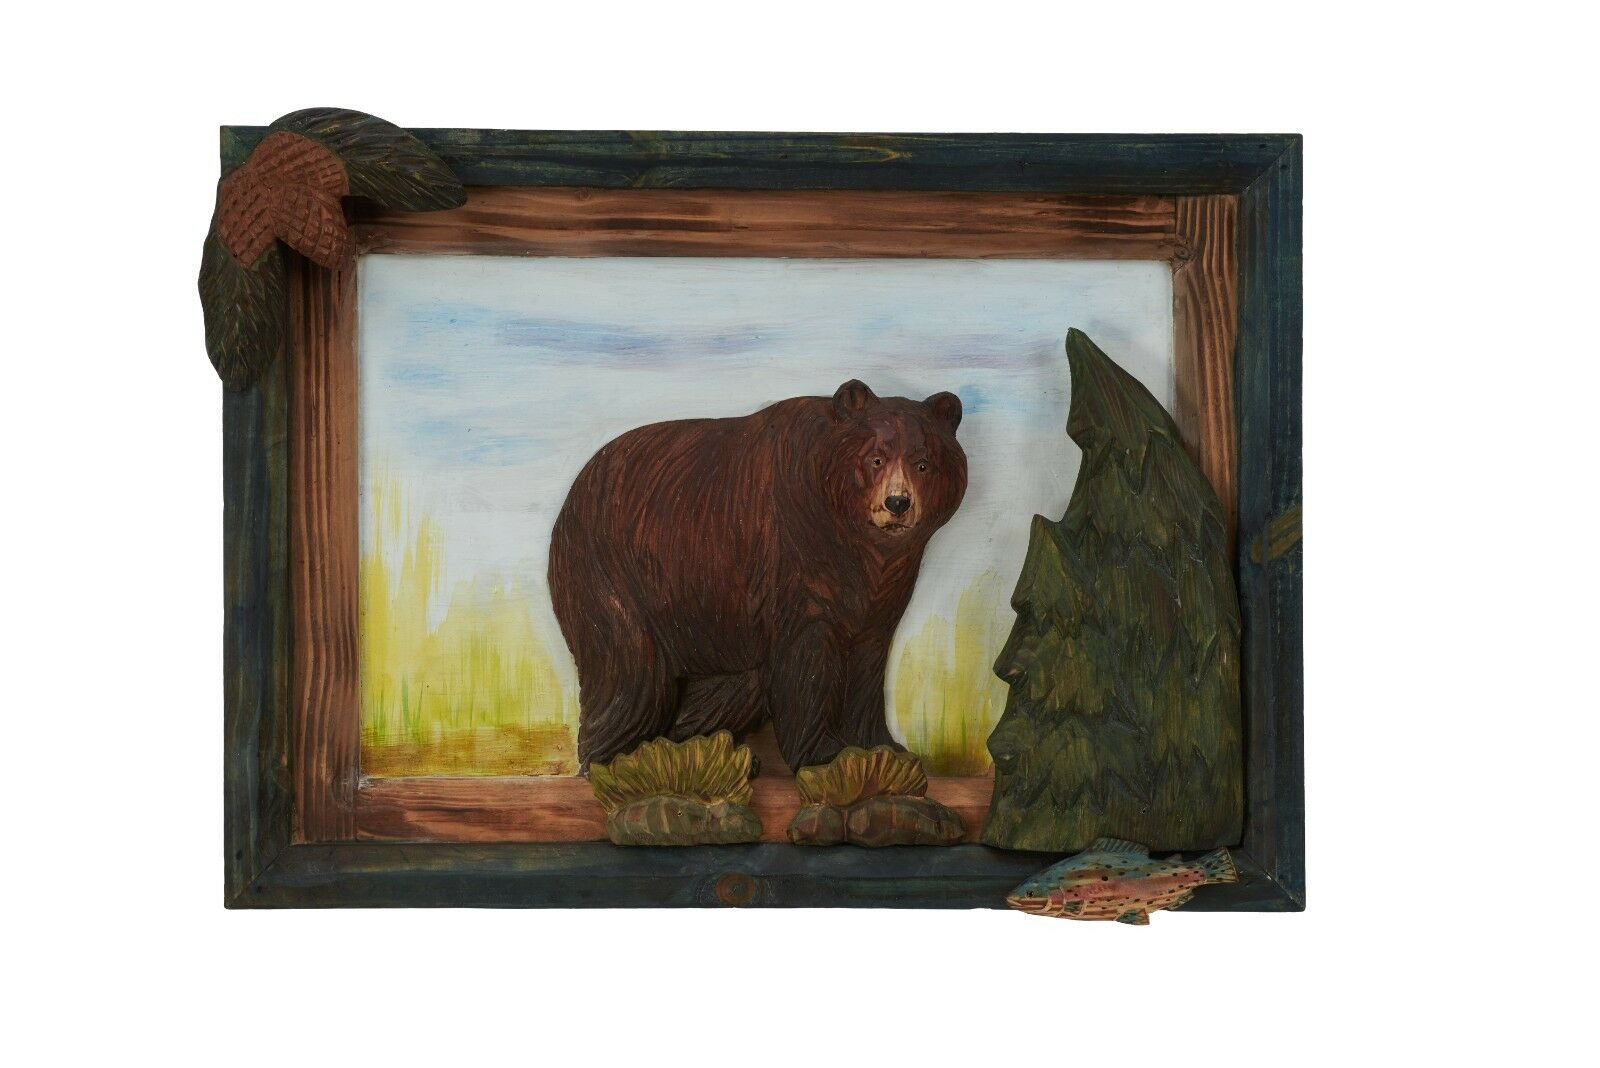 Black Bear Wood Carving Wall Art Cabin Rustic Decor 7995 Picclick